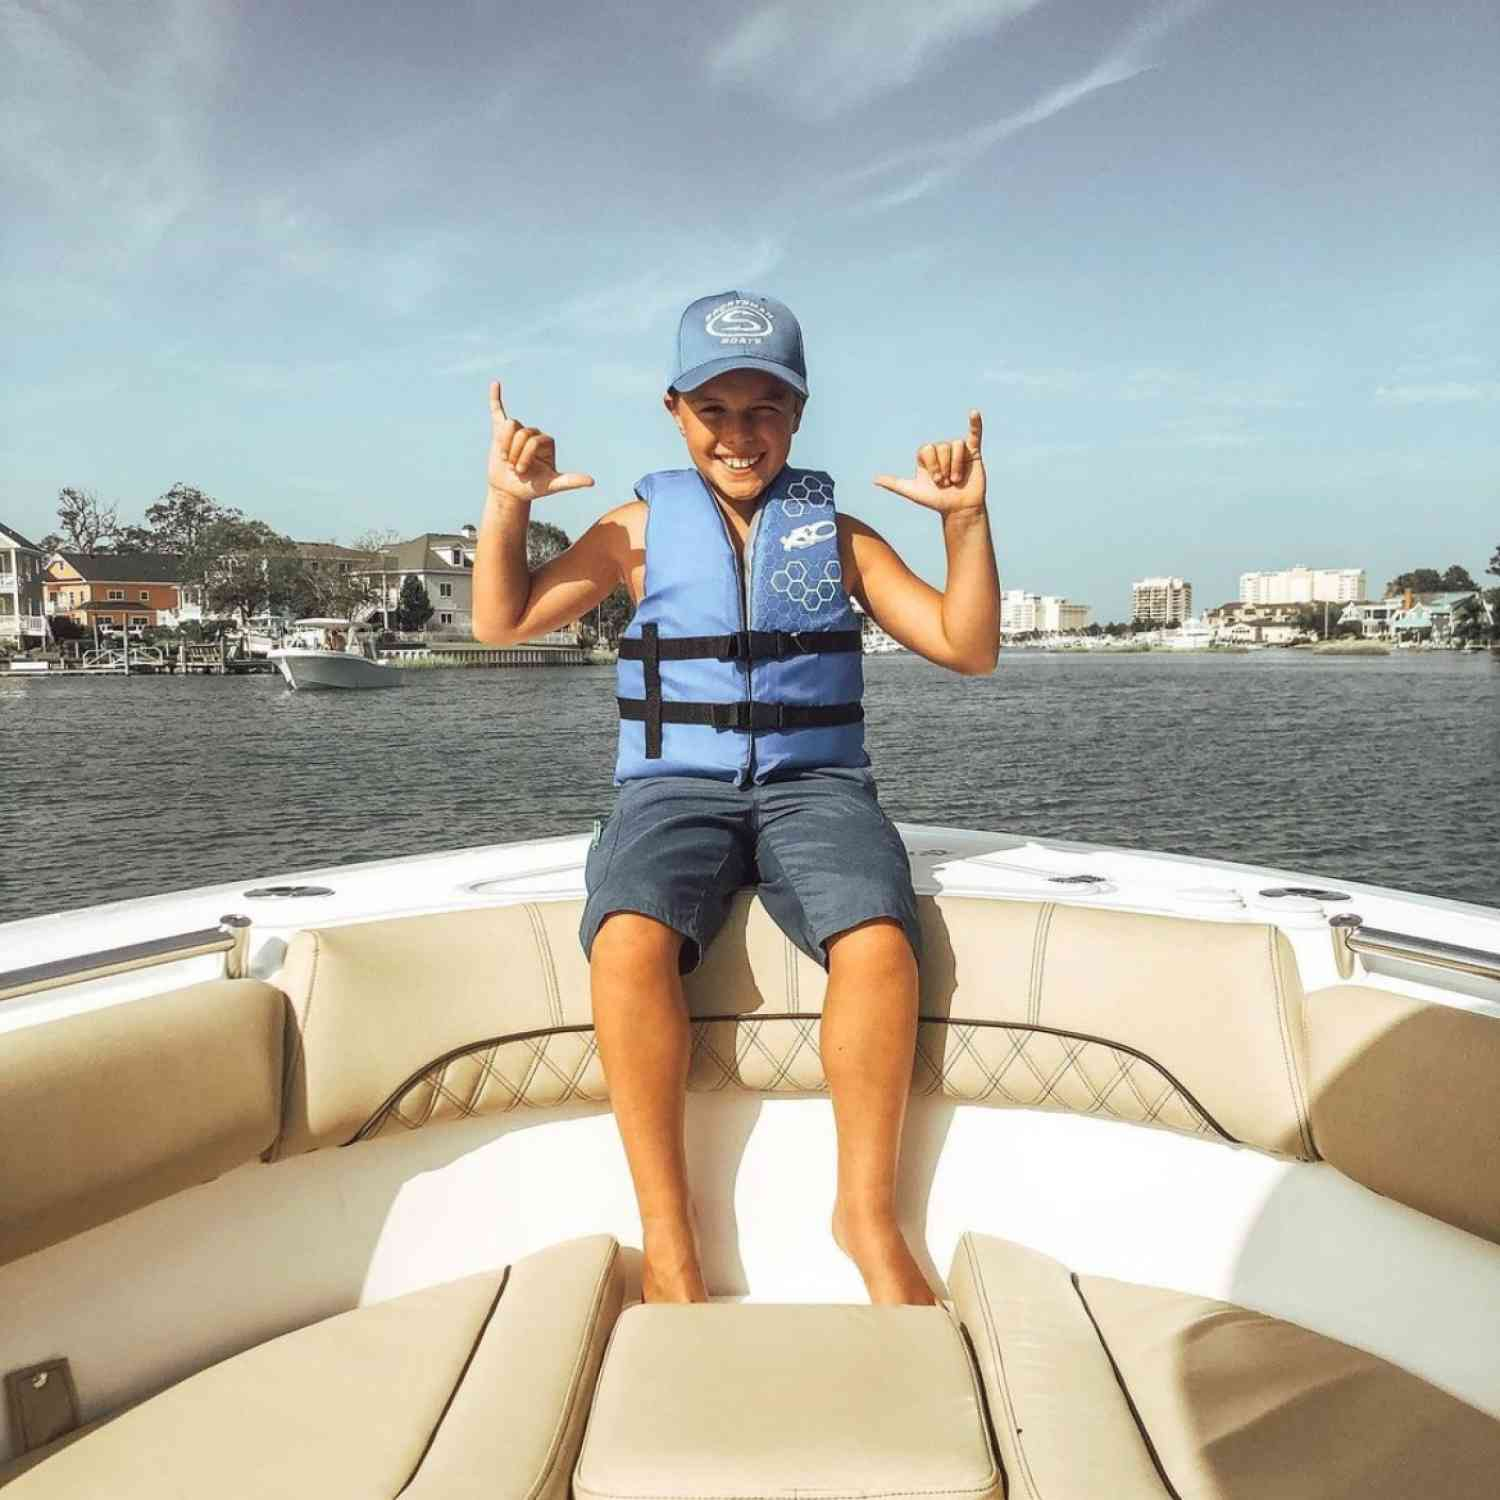 Title: Hanging loose in vb - On board their Sportsman Open 252 Center Console - Location: Rudee inlet. Participating in the Photo Contest #SportsmanMarch2021